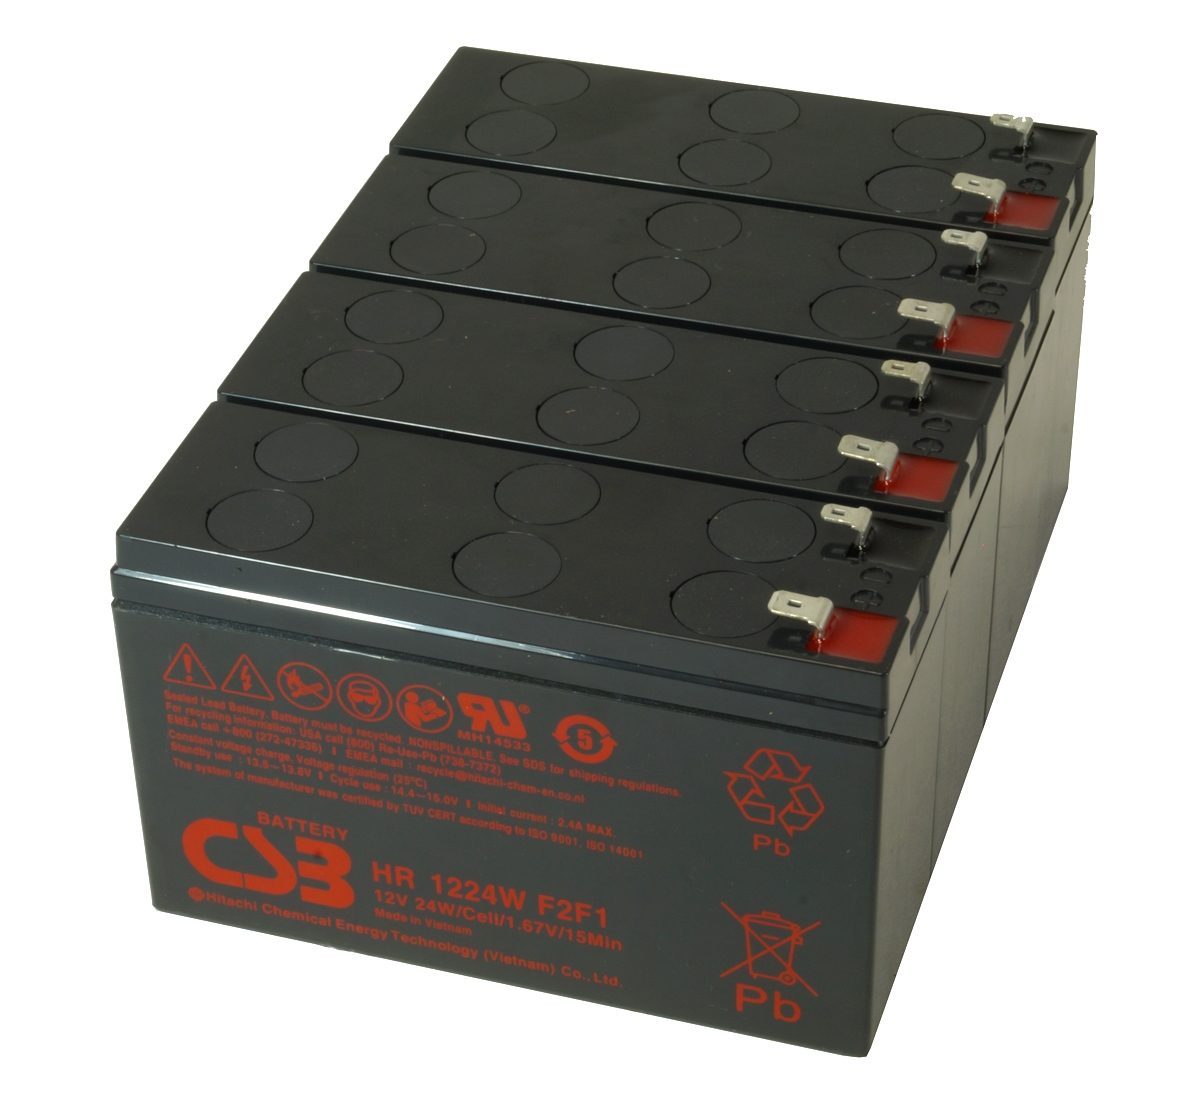 UPS vervangings batterij 4 x HR1224WF2F1 CSB Battery